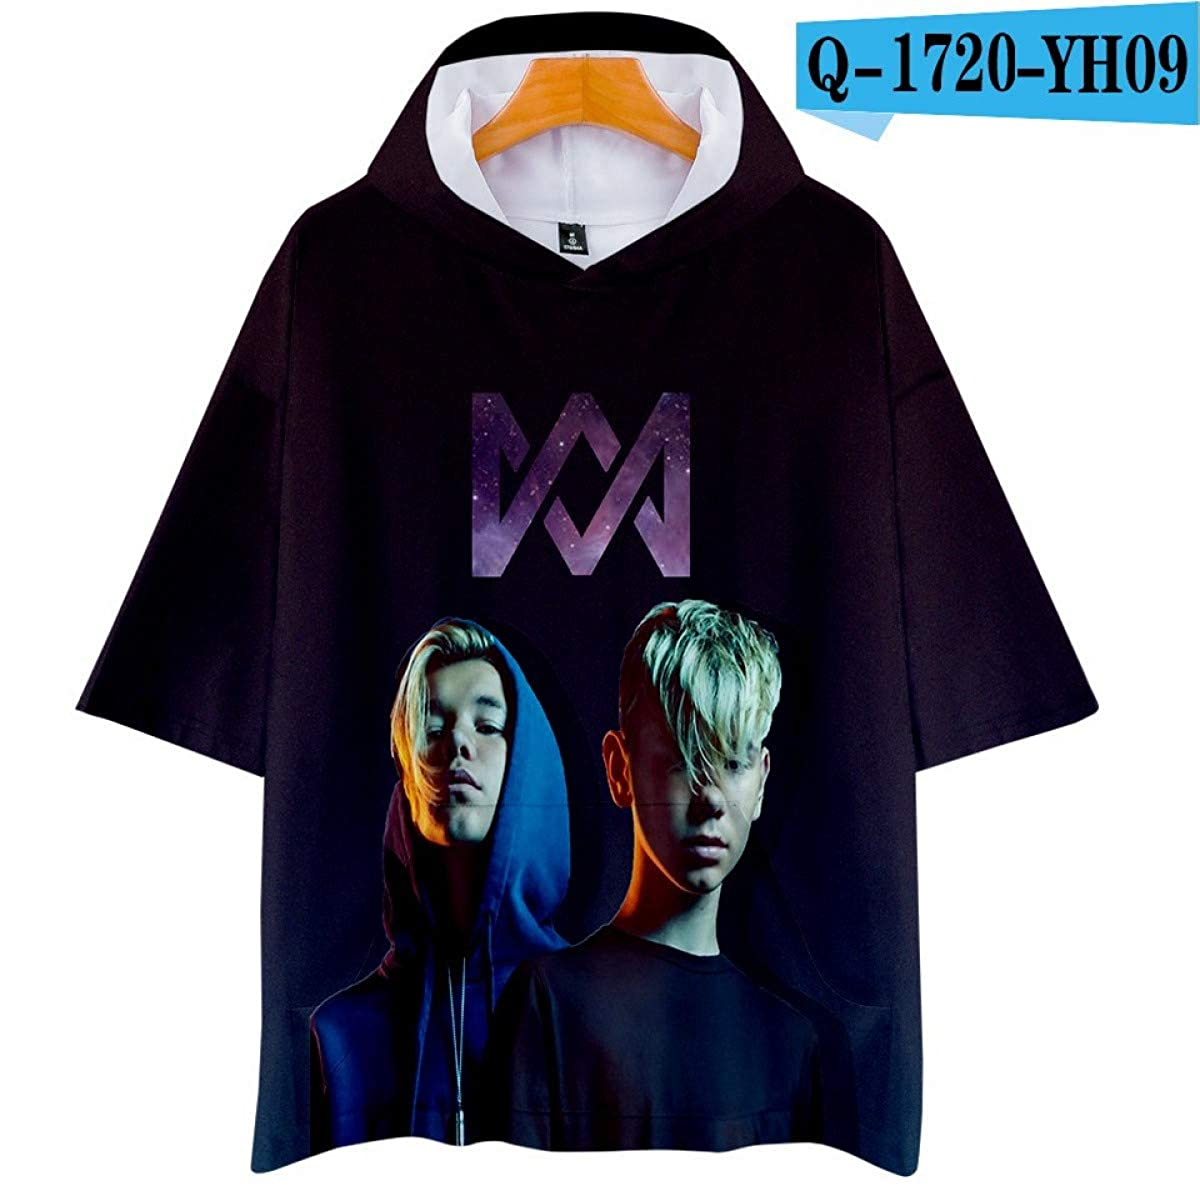 Amazon.com: WEEKEND SHOP Marcus &Martinus 3D Hoodies T-Shirt Oversized Pullover Casual Shirt: Clothing